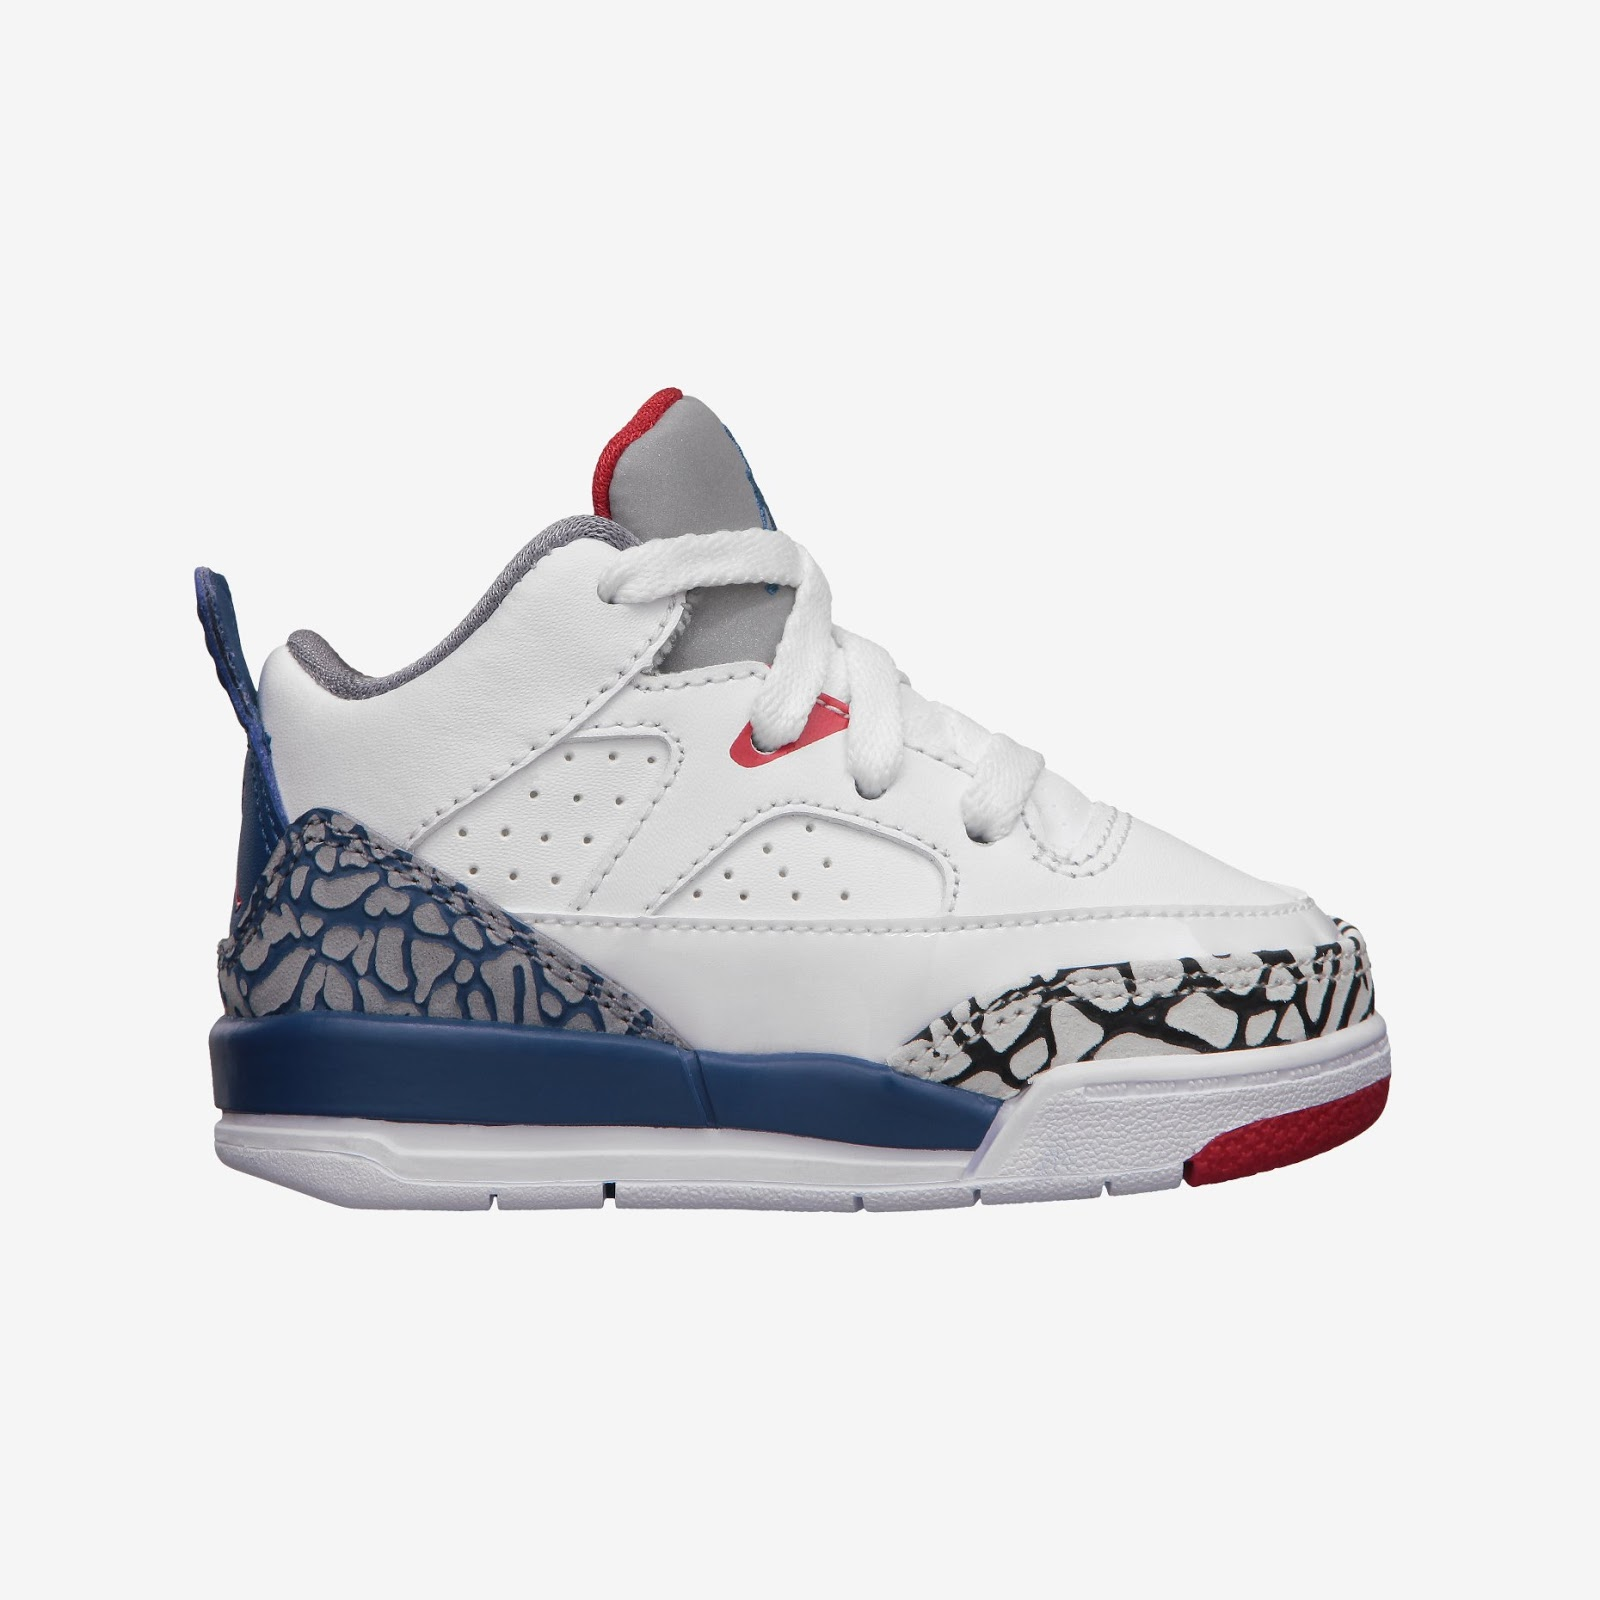 Shop the latest selection of Boys' Jordan Shoes at Foot Locker. Find the hottest sneaker drops from brands like Jordan, Nike, Under Armour, New Balance, and a .